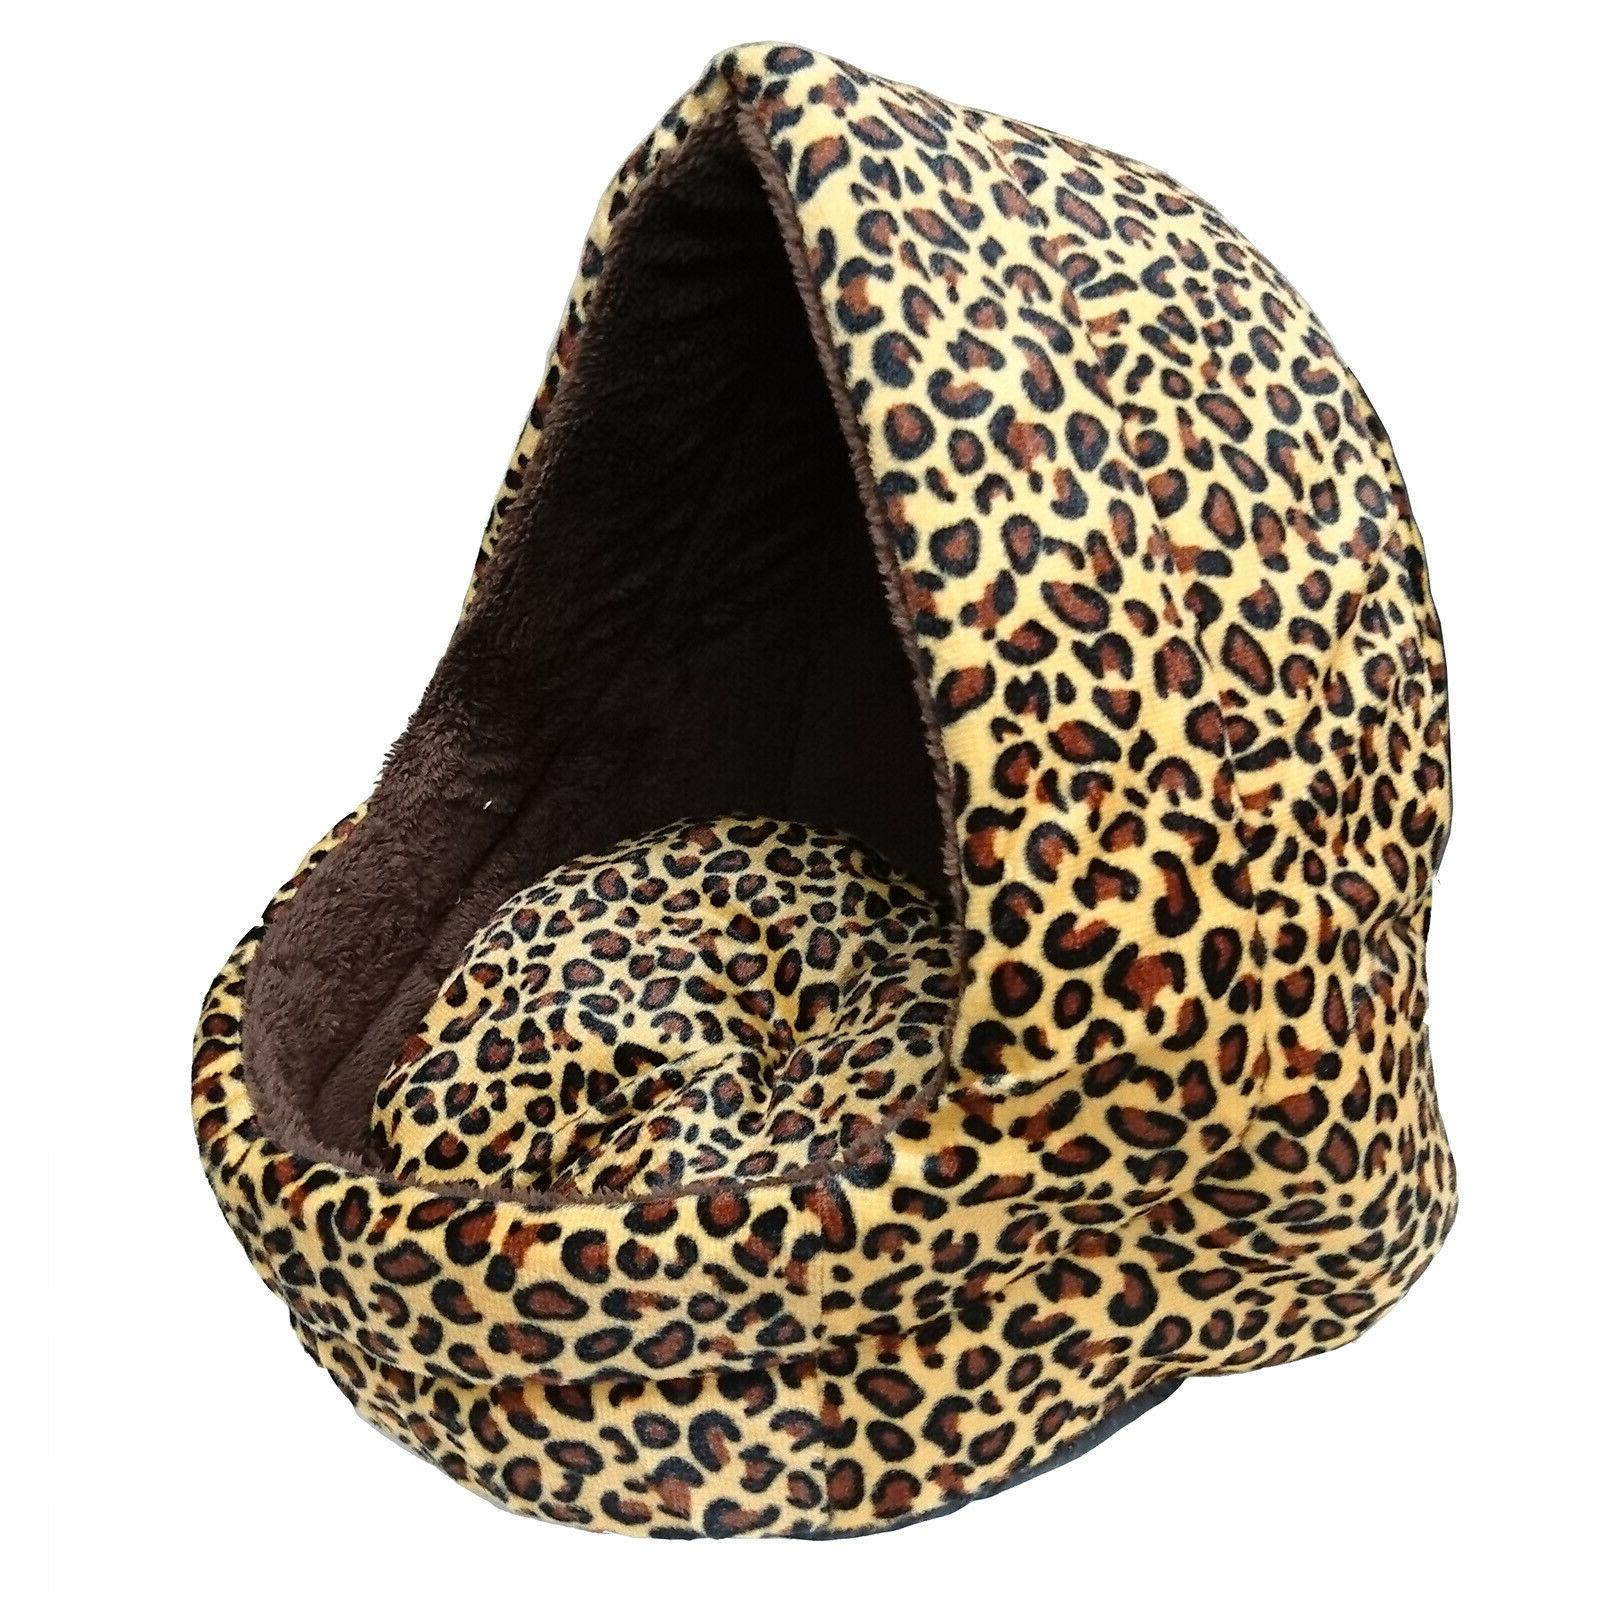 Soft Leopard Pet Dog Cat Bed House Kennel Doggy Puppy Warm B